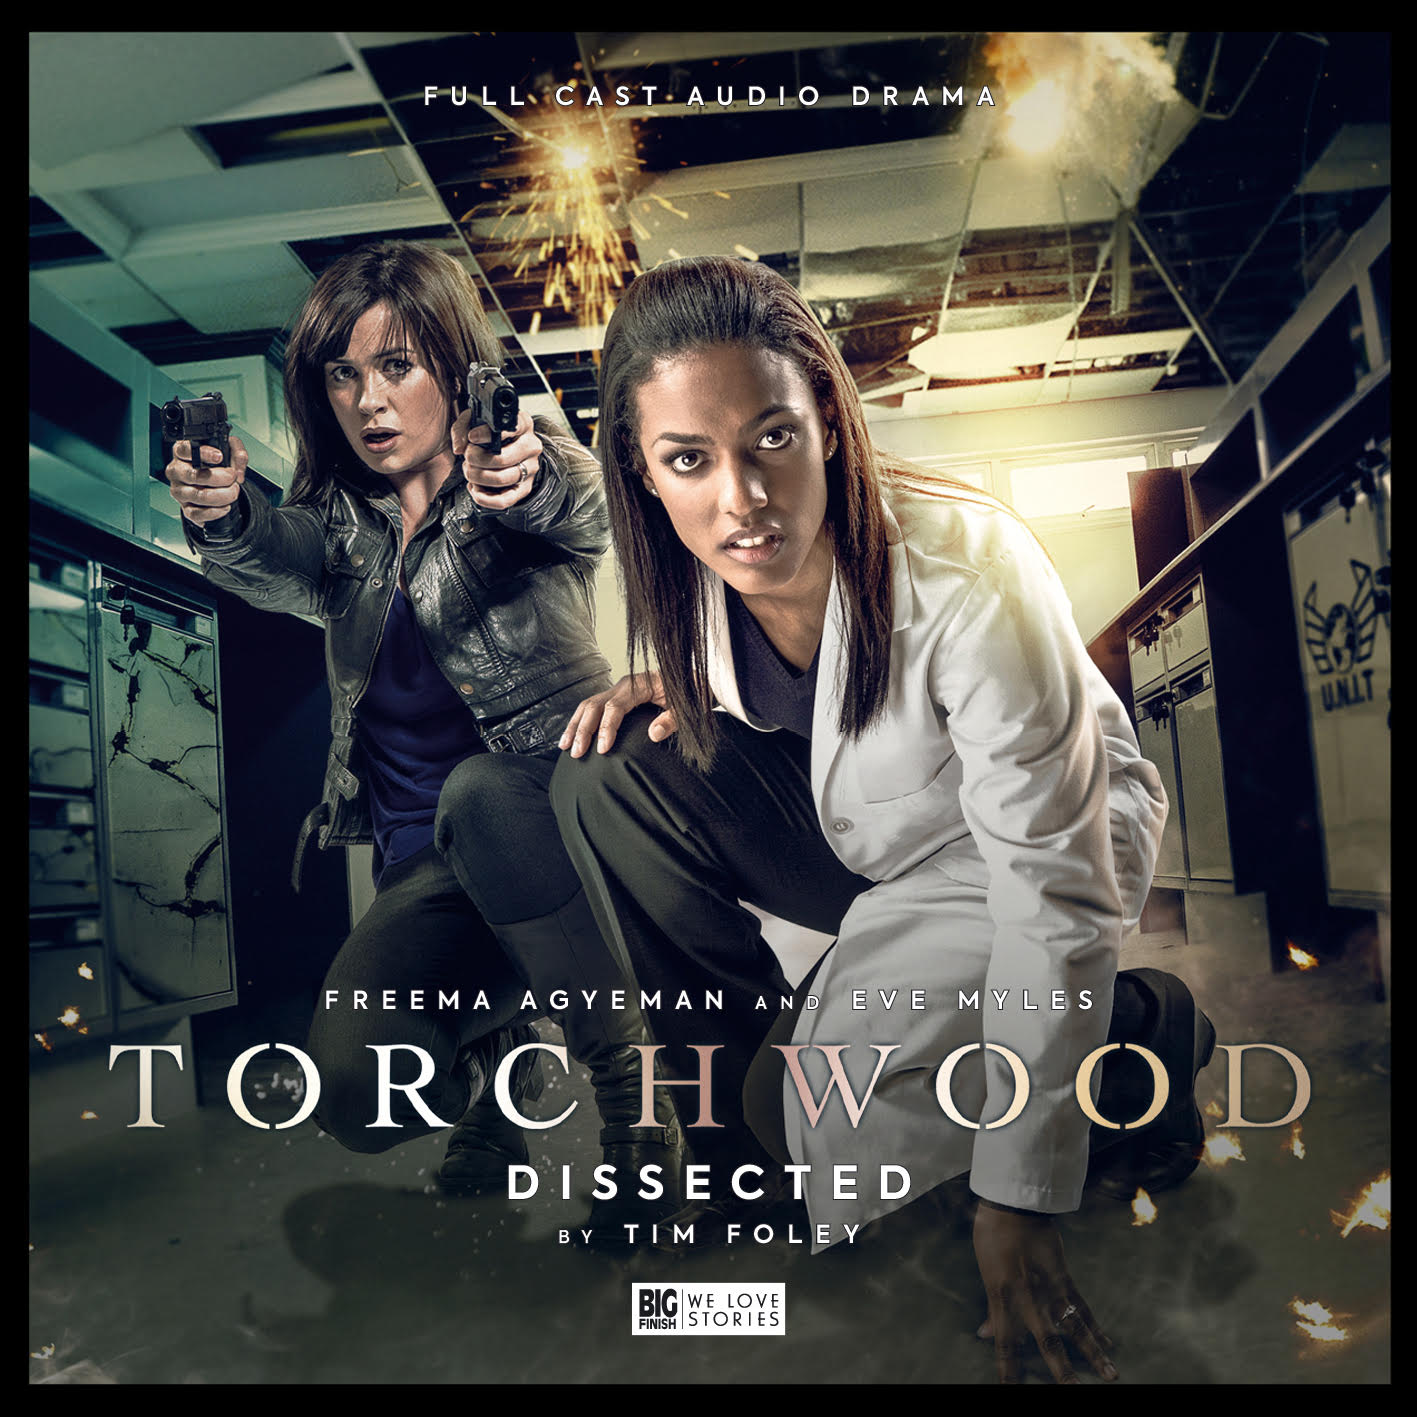 Torchwood review: Dissected is a brilliant return for Martha Jones